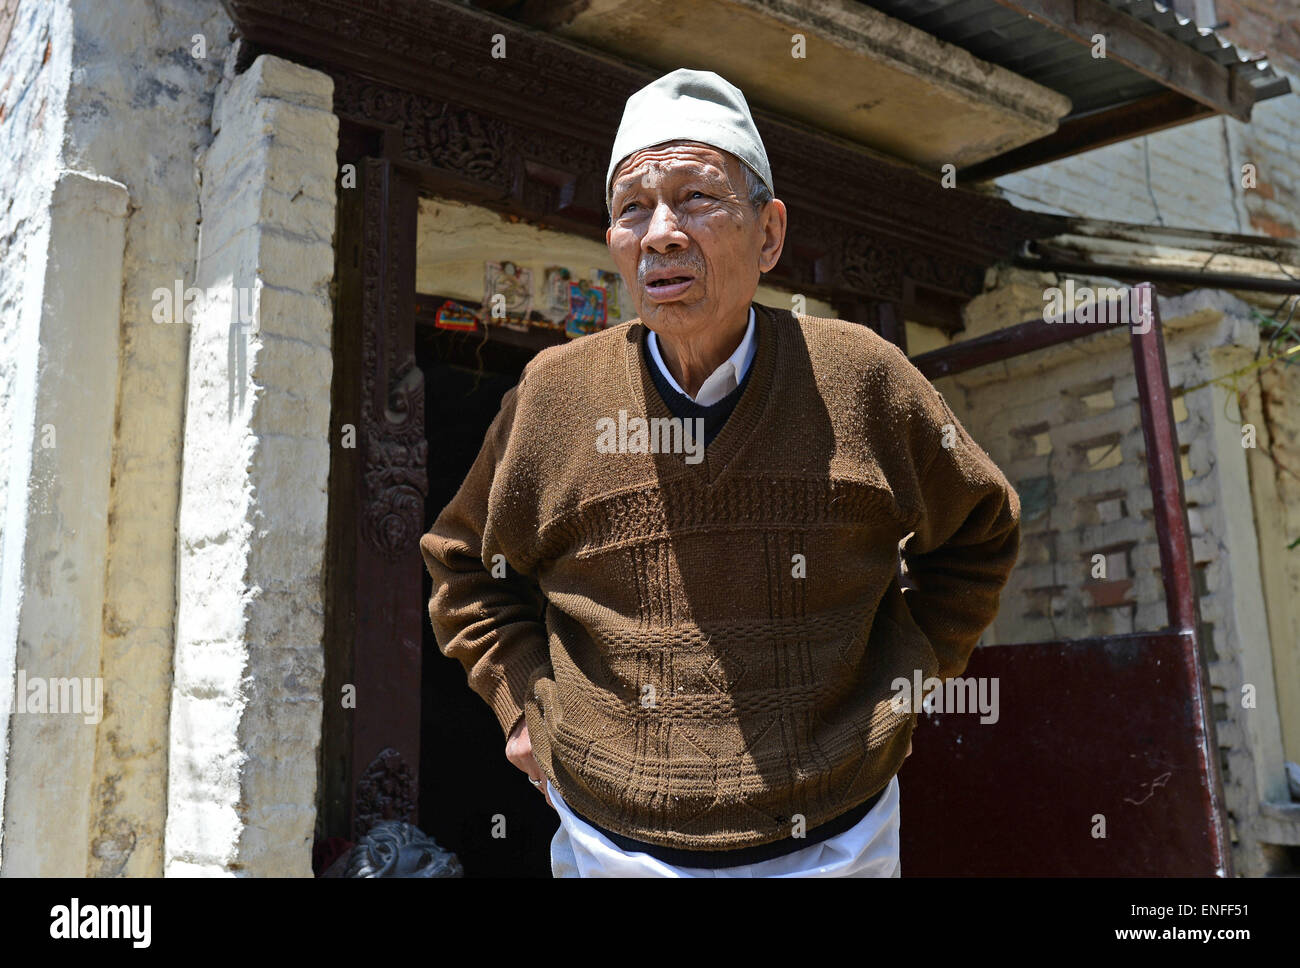 Kathmandu, Nepal. 04th May, 2015. Satyamohan Joshi talks about his memories of the earthquake that occurred in Nepal - Stock Image